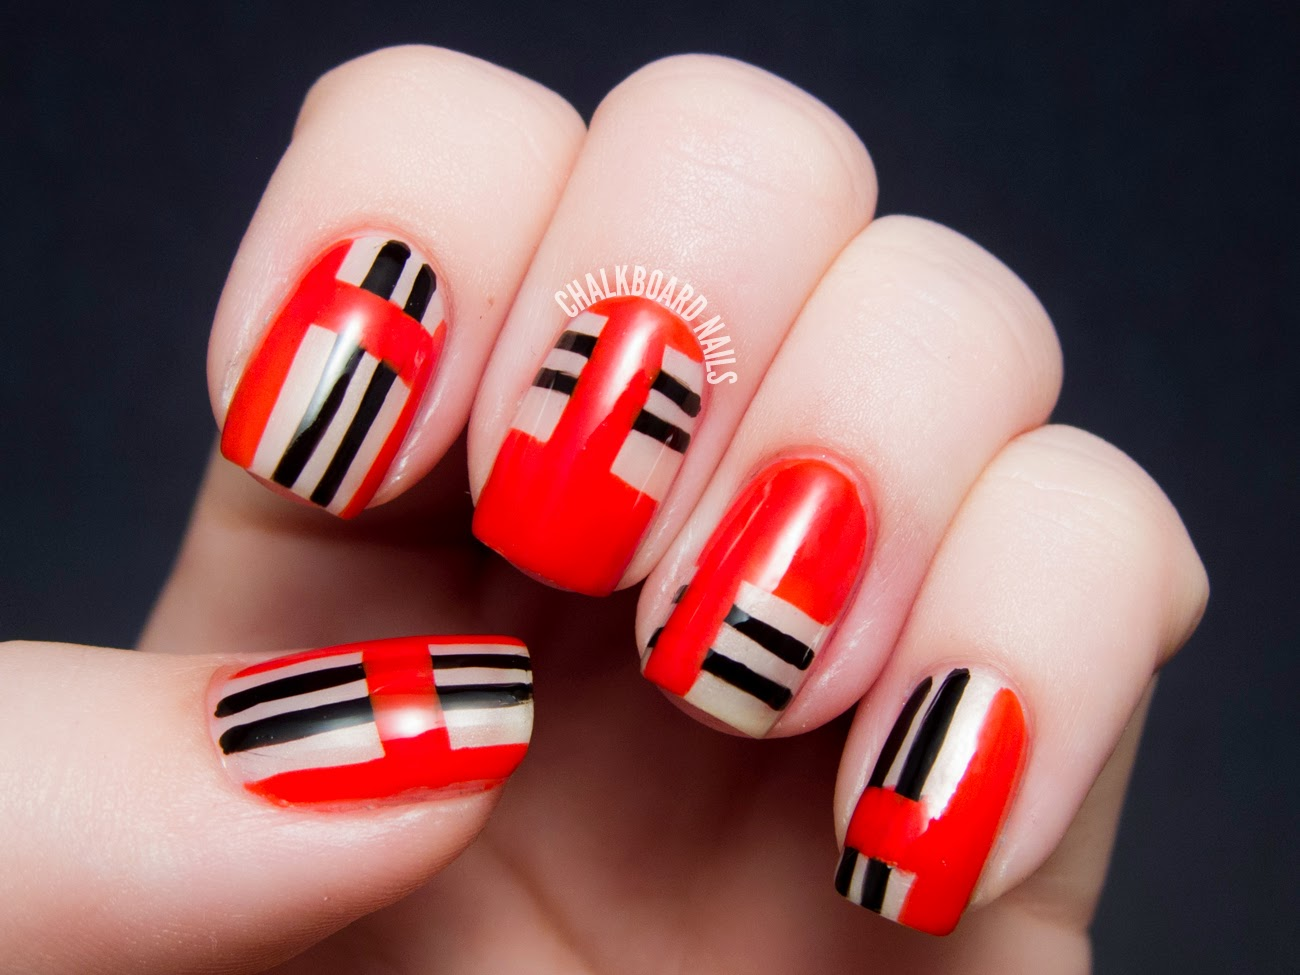 Nail Designs With Red Black And White Black White Red Nail Art Gallery Nail  Designs - Nail Art Red Black - Usefulresults